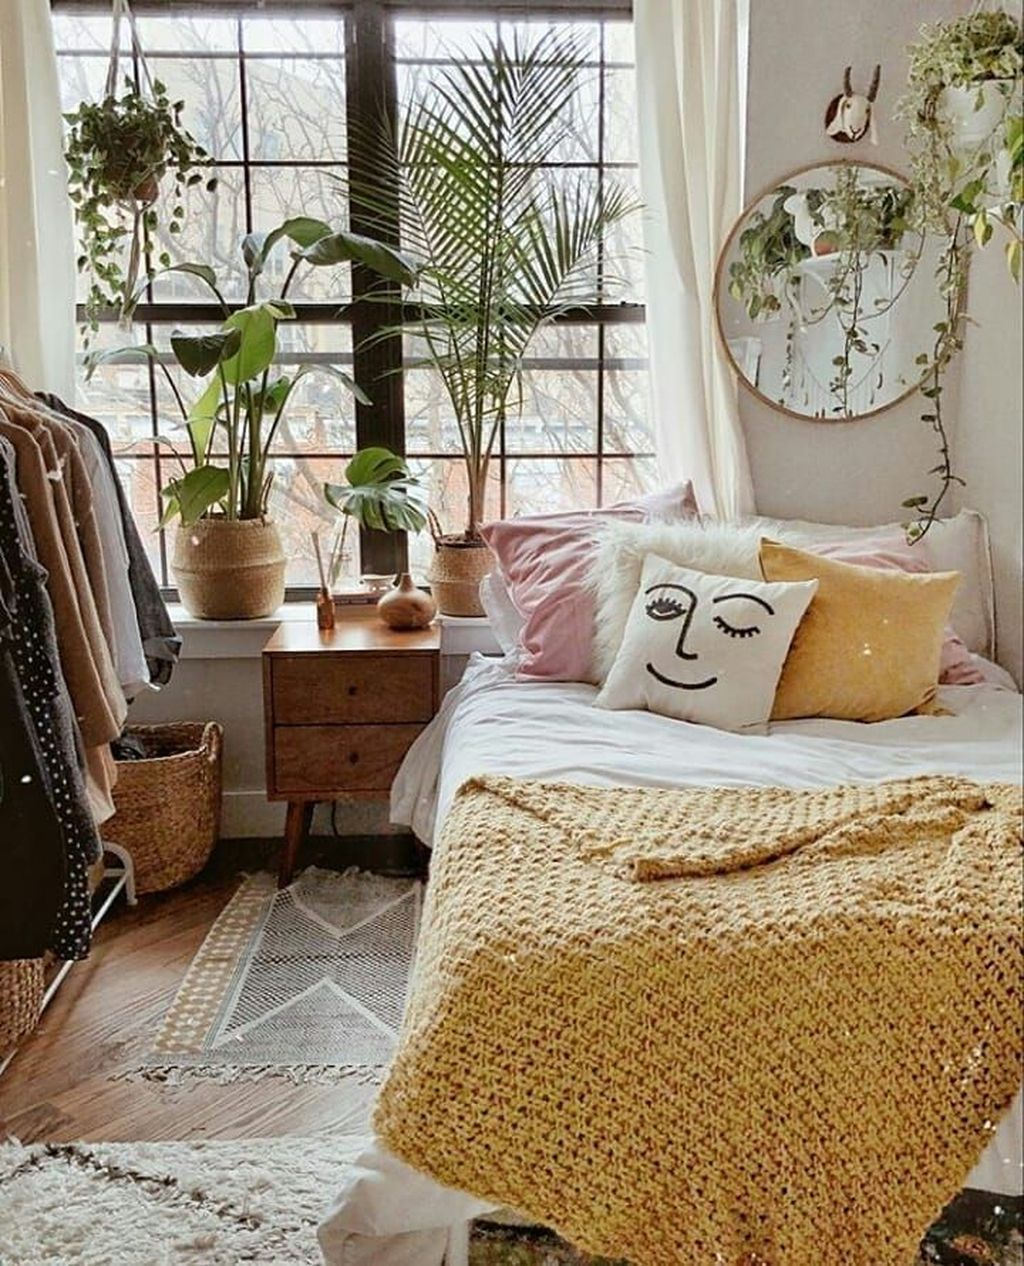 Admirable Small Bedroom Decor Ideas You Never Seen Before 11